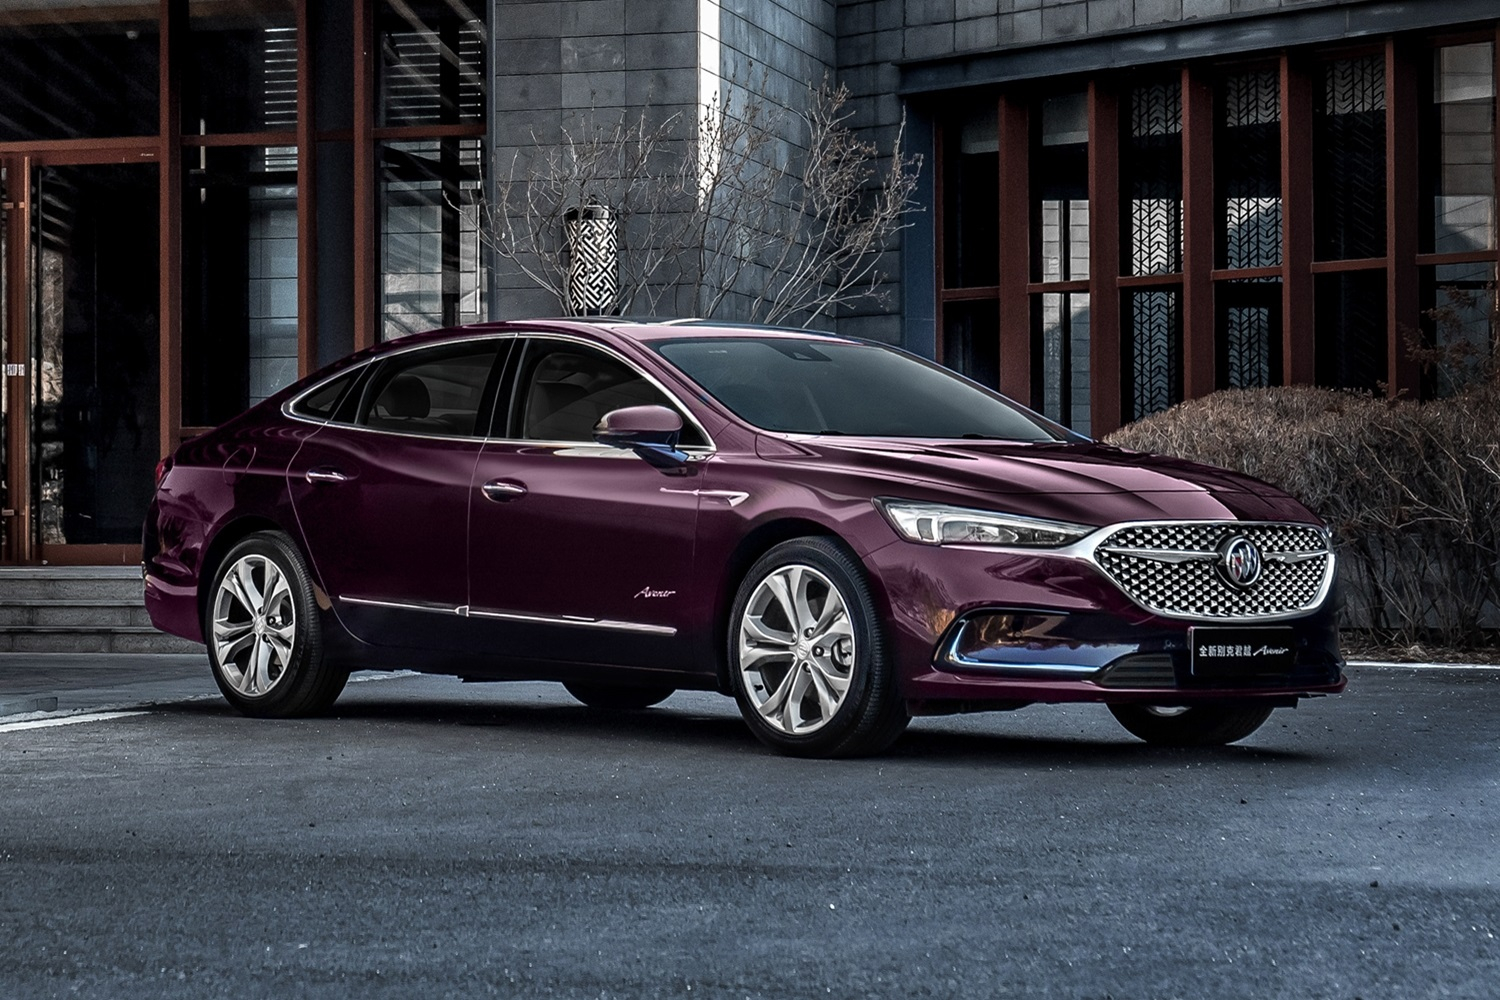 2021 Buick Lacrosse Gets More Refined Than Ever | Gm Authority 2021 Buick Regal Tourx Discontinued, Mpg, Engine